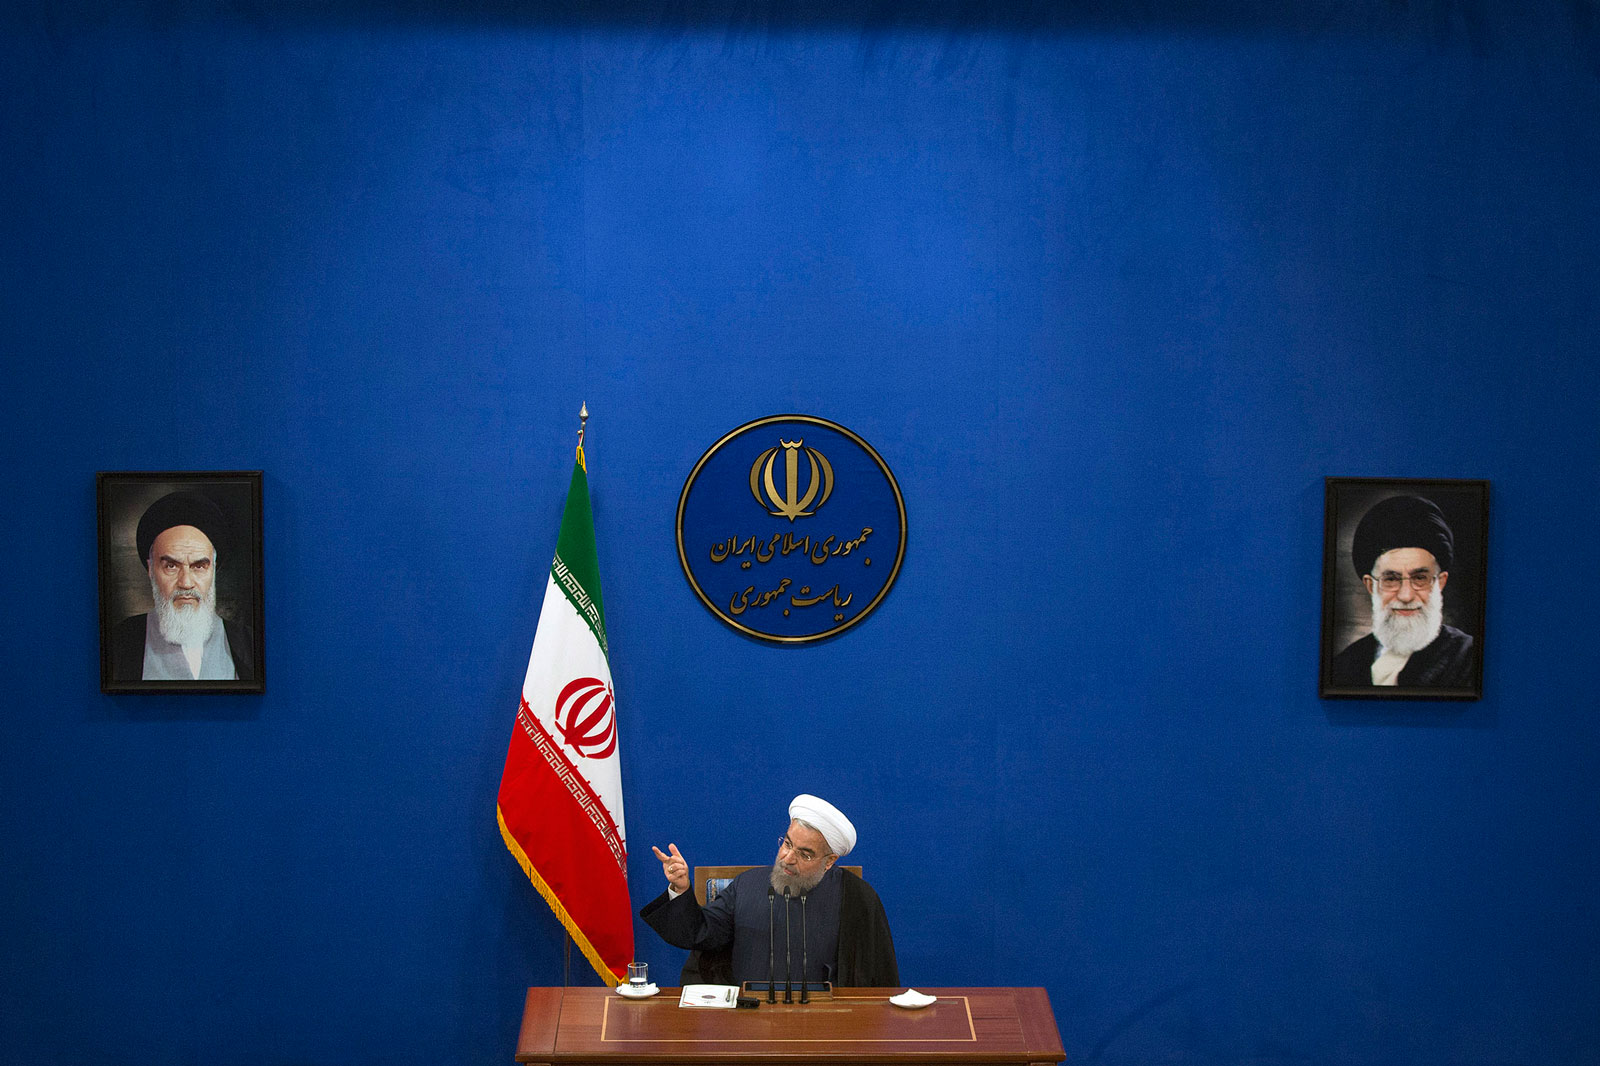 Hassan Rouhani, Iran's president, speaks during a press conference at the presidential offices in Tehran